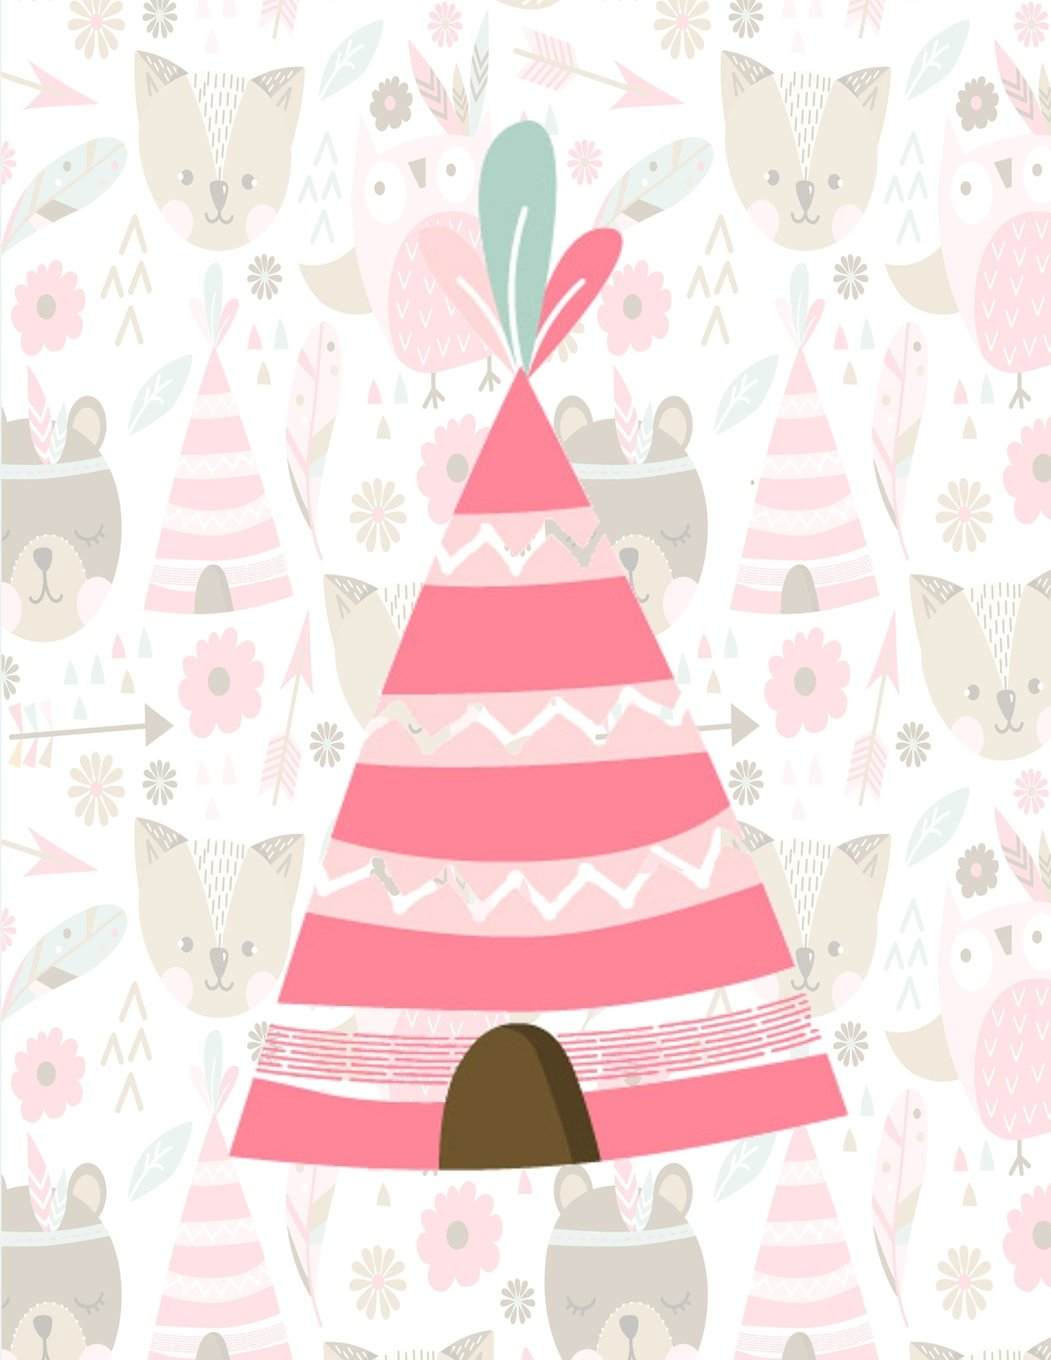 Notebook: Pretty Pink Wigwam Notebook For Girls, Large Size - Letter, Wide Ruled (Cute Animal Pattern) (Volume 5) pdf